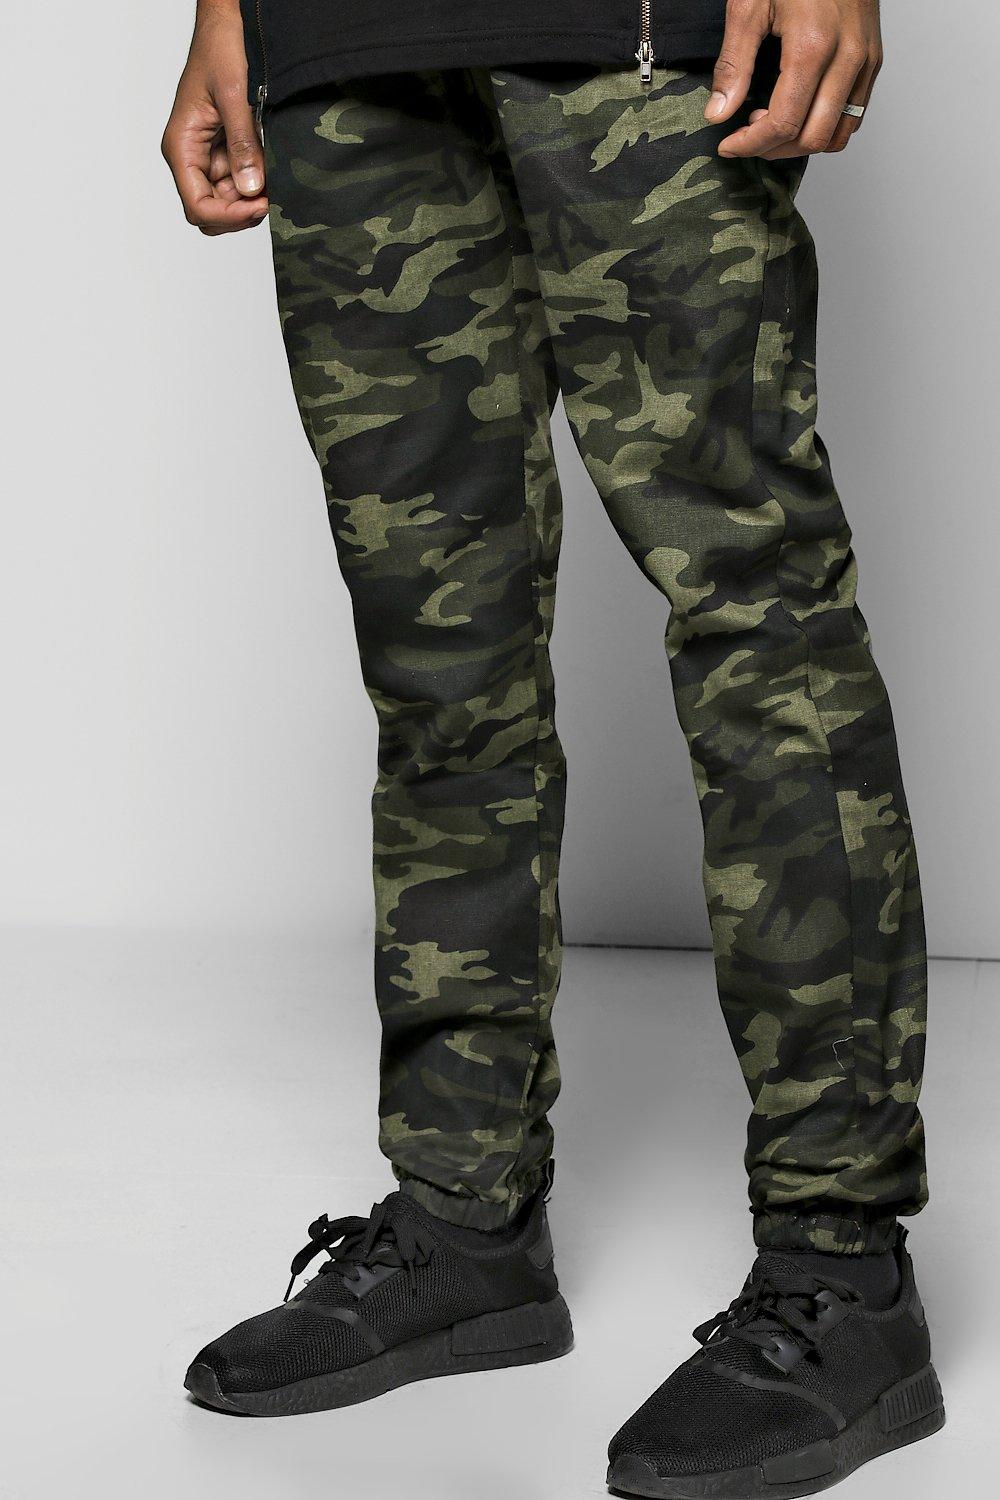 new release newest complete in specifications Camo Cuffed Skinny Joggers | Boohoo